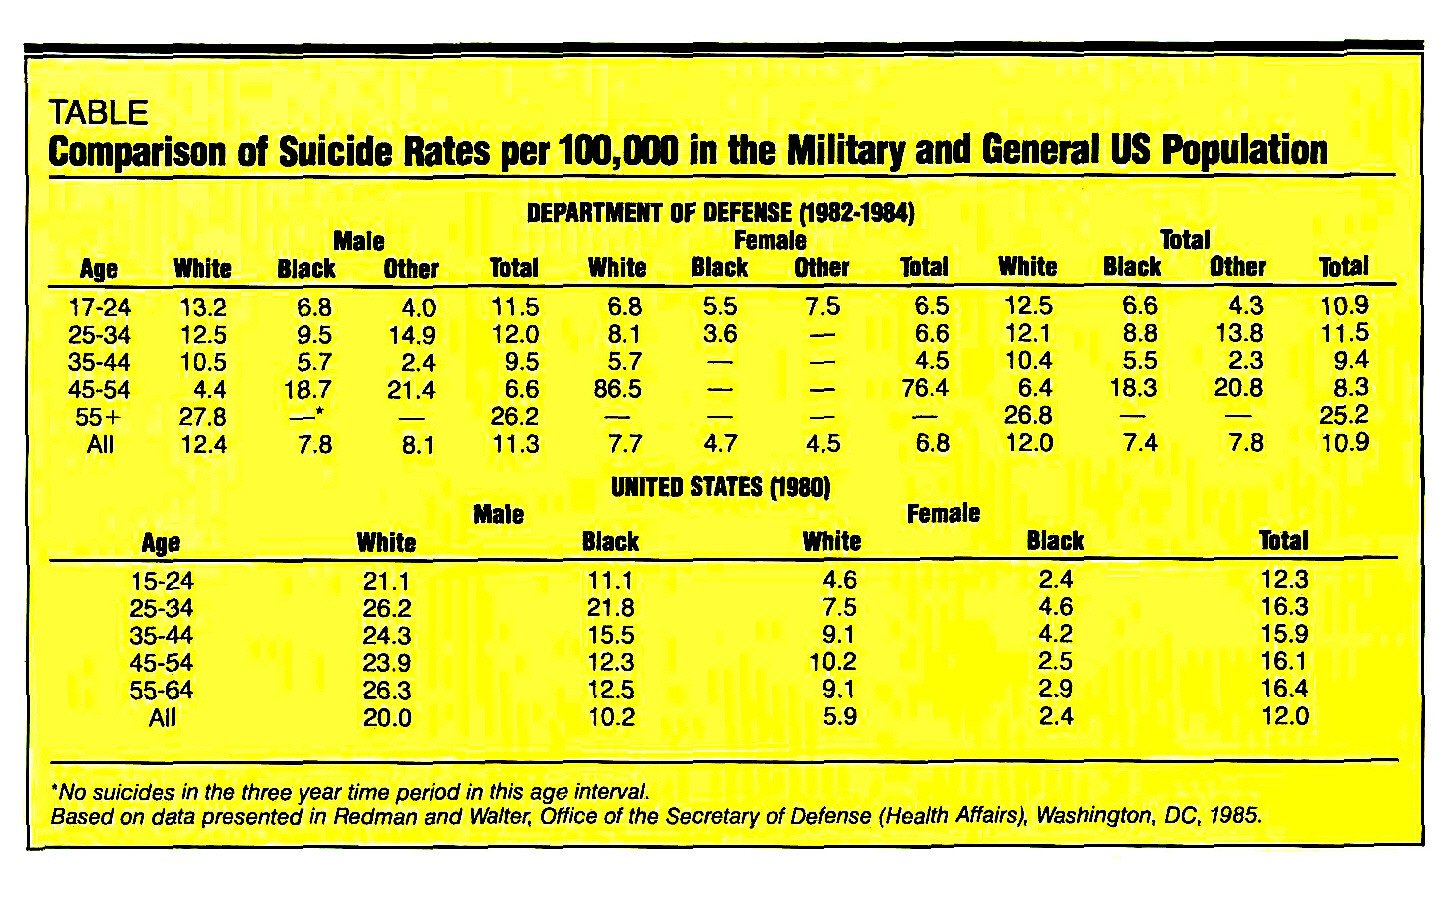 TABLEComparison of Suicide Rates per 100,000 in the Military and General US Population